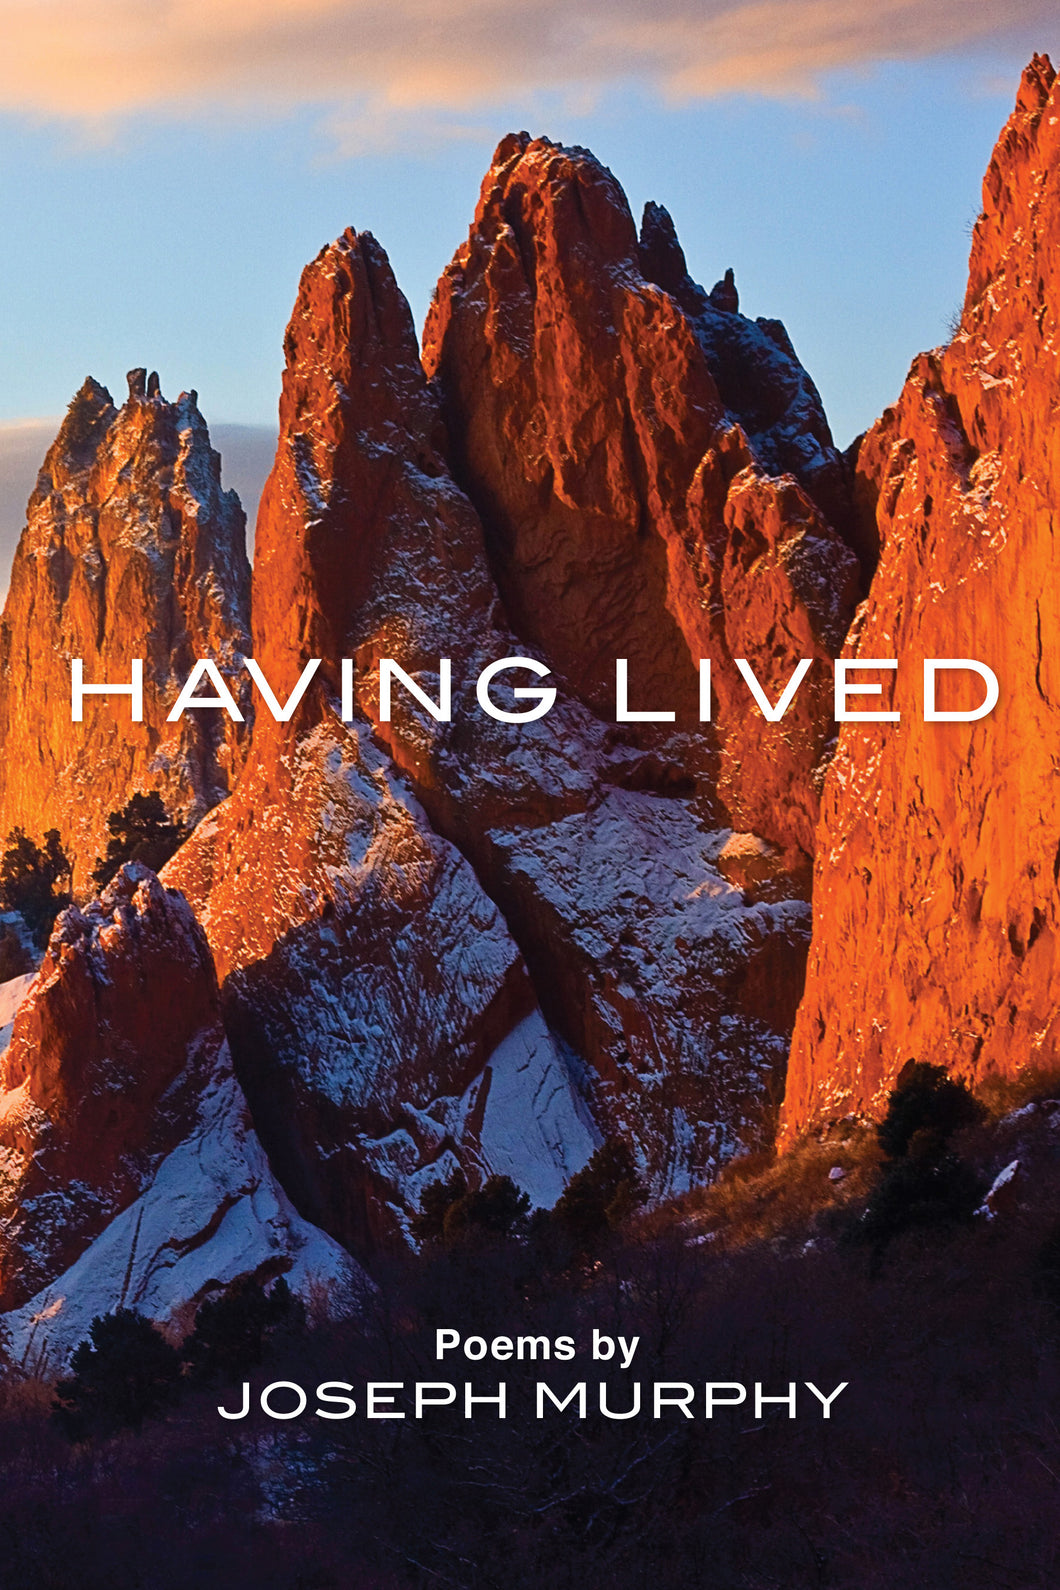 Having Lived